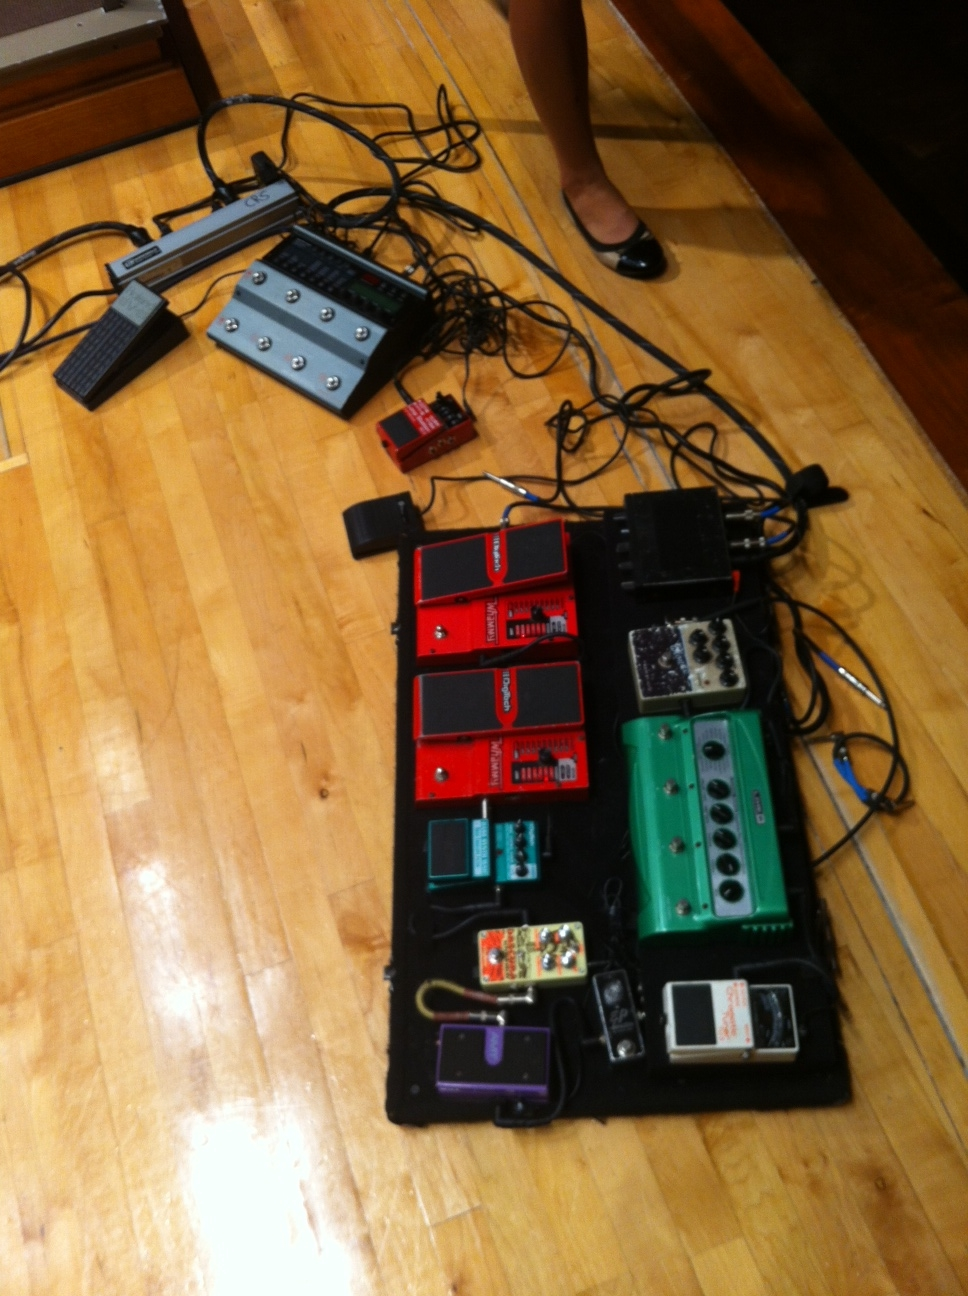 Look at all of those effects pedals!